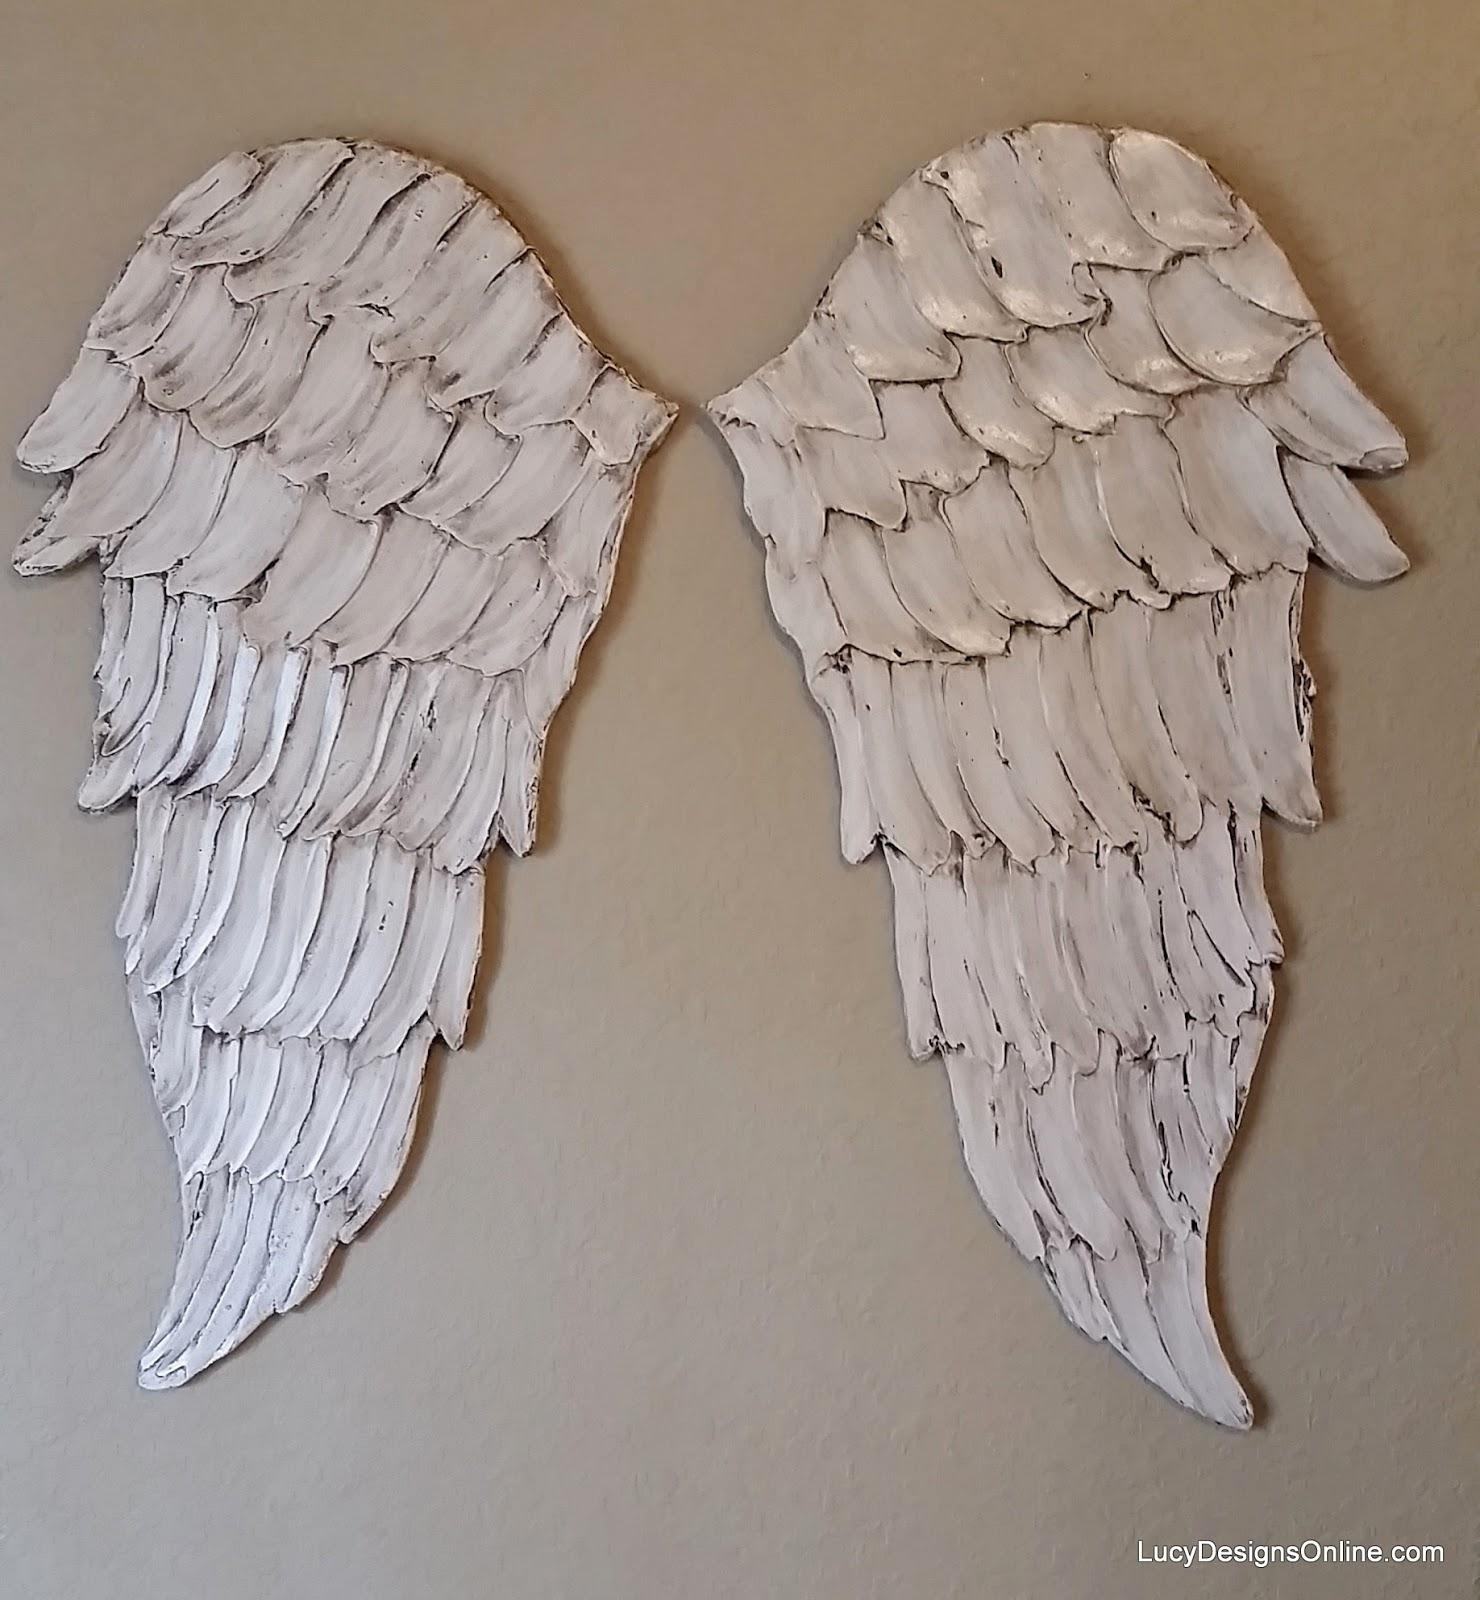 Carved Wood Wall Art Australia 20 43 Choices Of Angel Wing Wall Art Wall Art Ideas